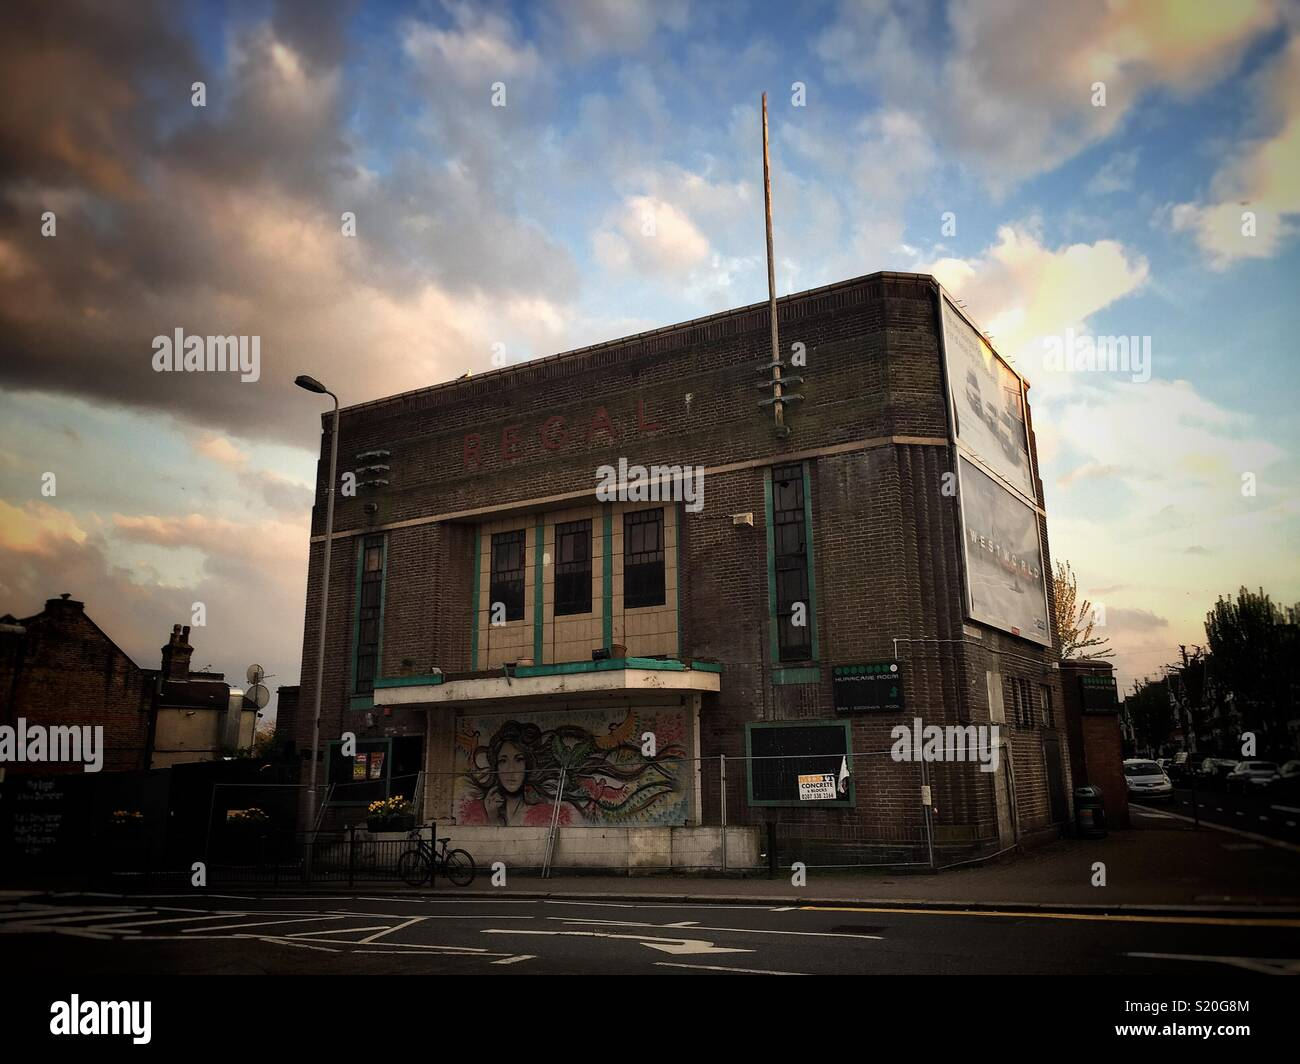 Rio Regal Regal Cinema, Highams Park, Waltham Forest, London. Soon To Be Developed By Rio Cinema Stock Photo - Alamy